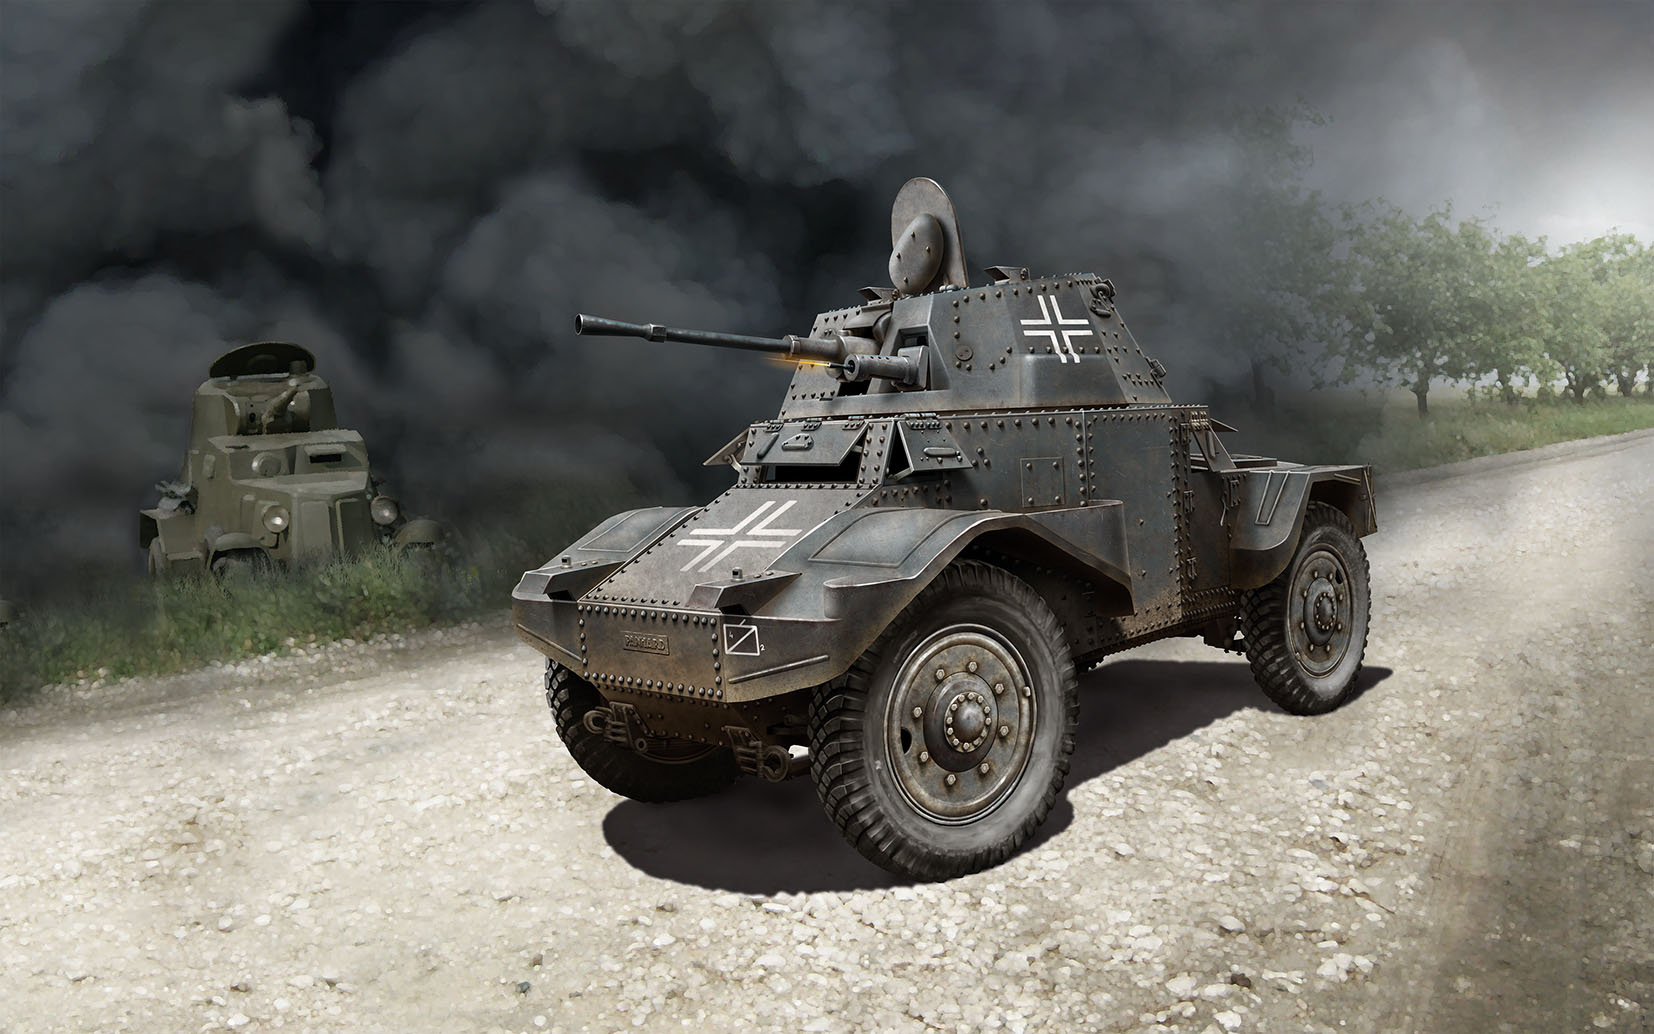 ICM Panzersp�hwagen P 204 (f), WWII German Armoured Vehicle